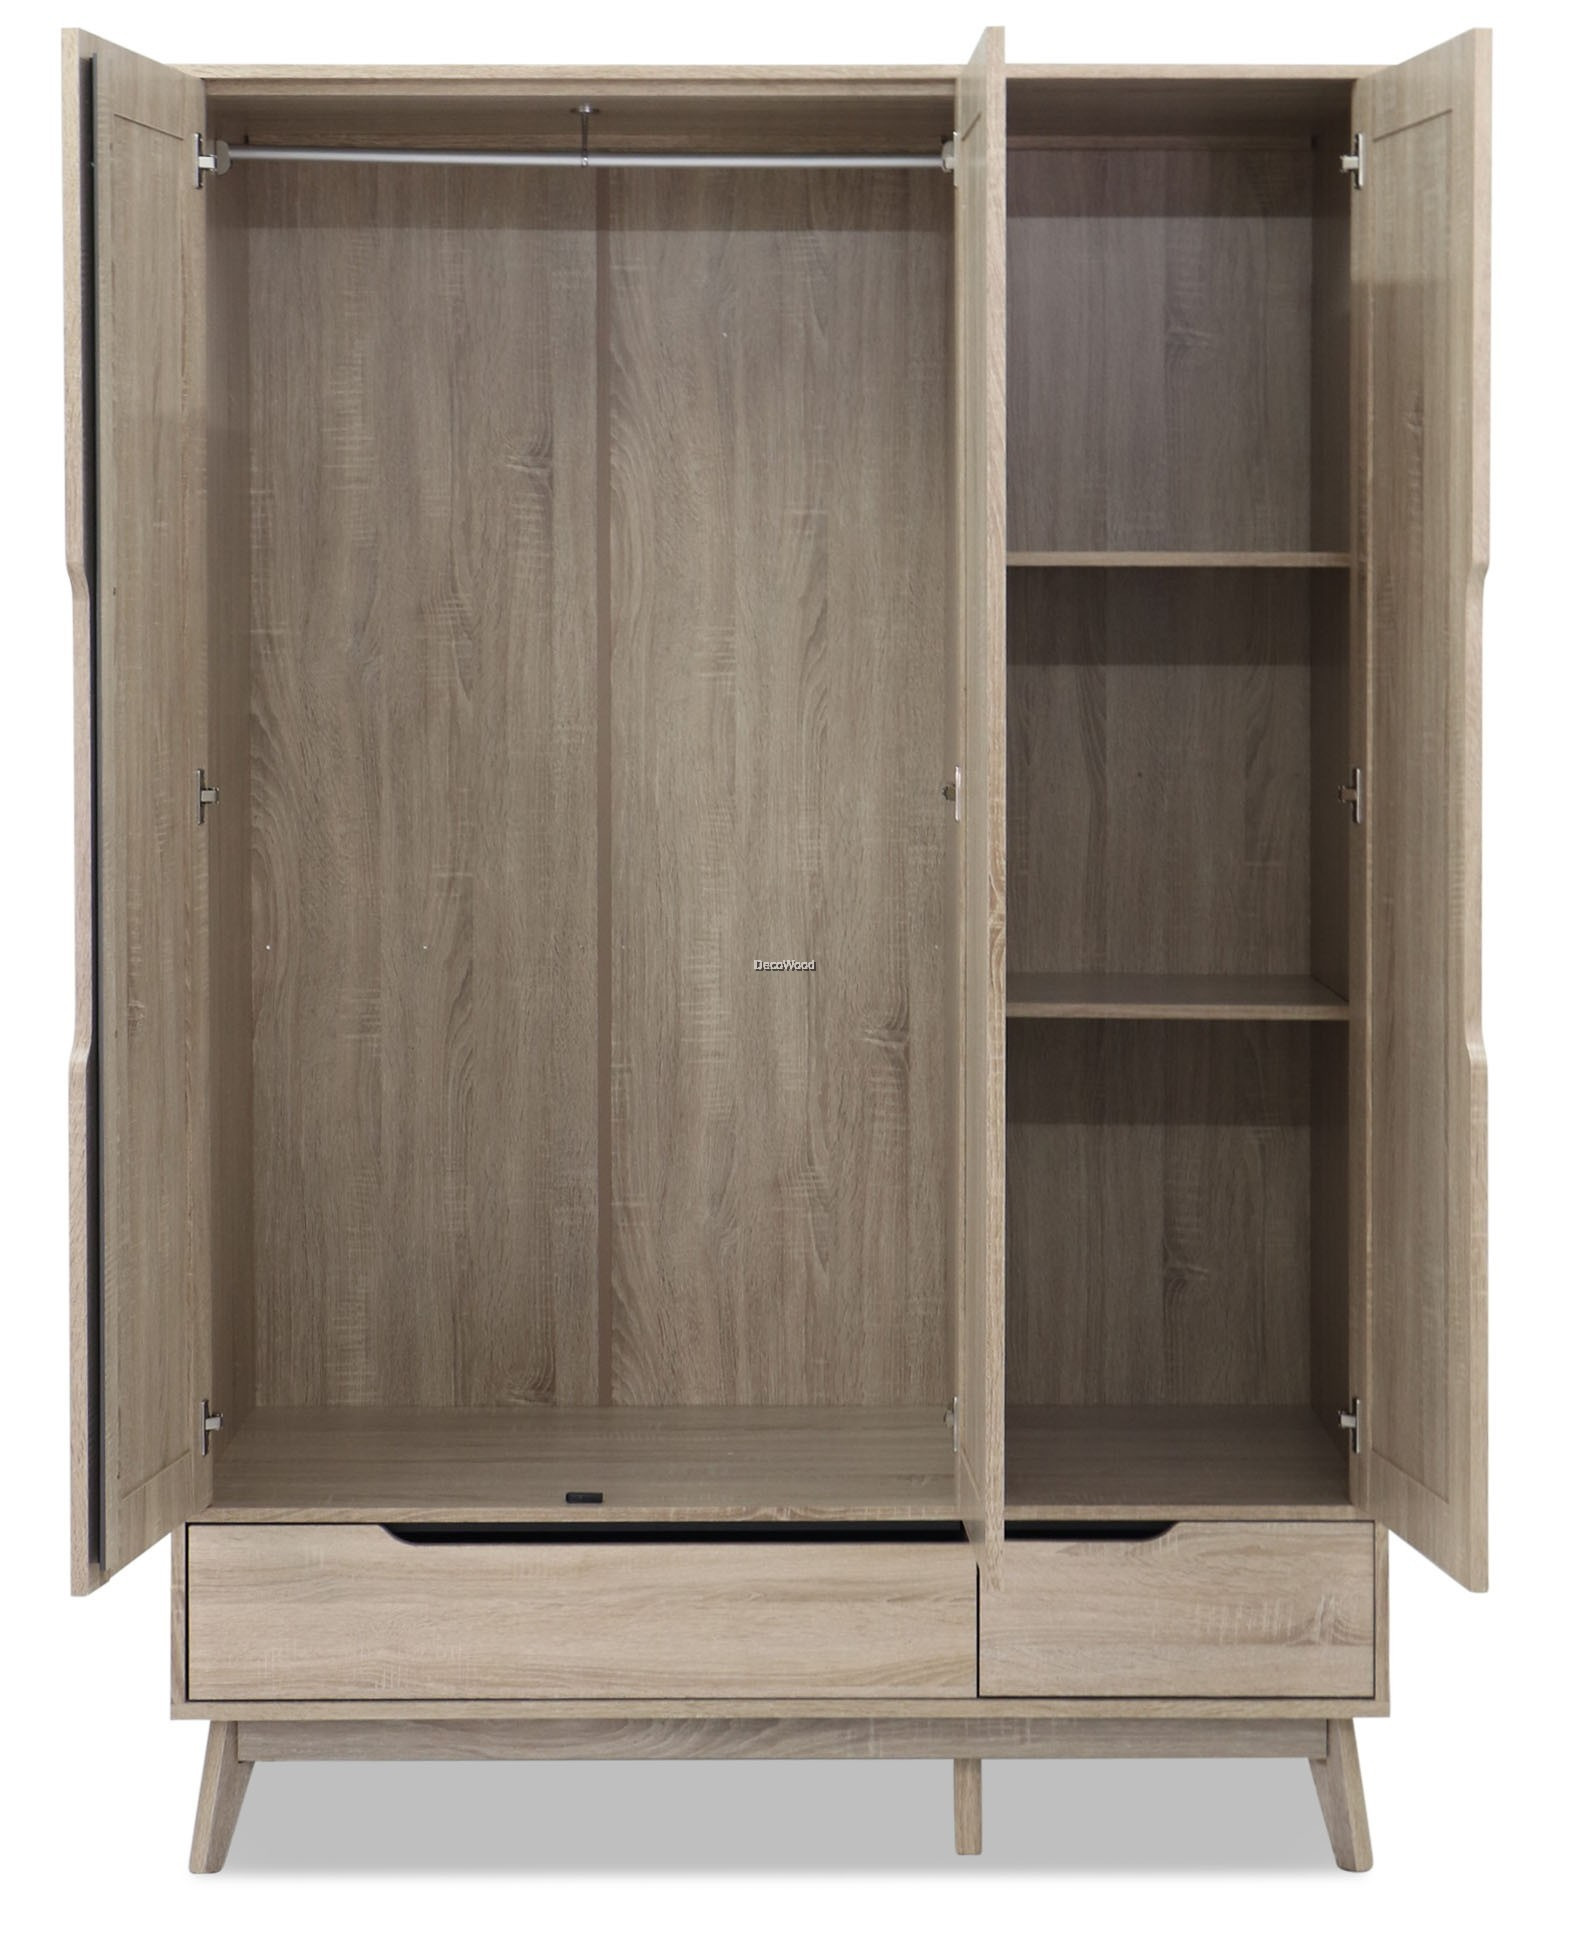 fella 3 door wardrobe cloth storage cabinet swing door cabinet almari kayu almari baju l1330mm x w600mm x h2000mm